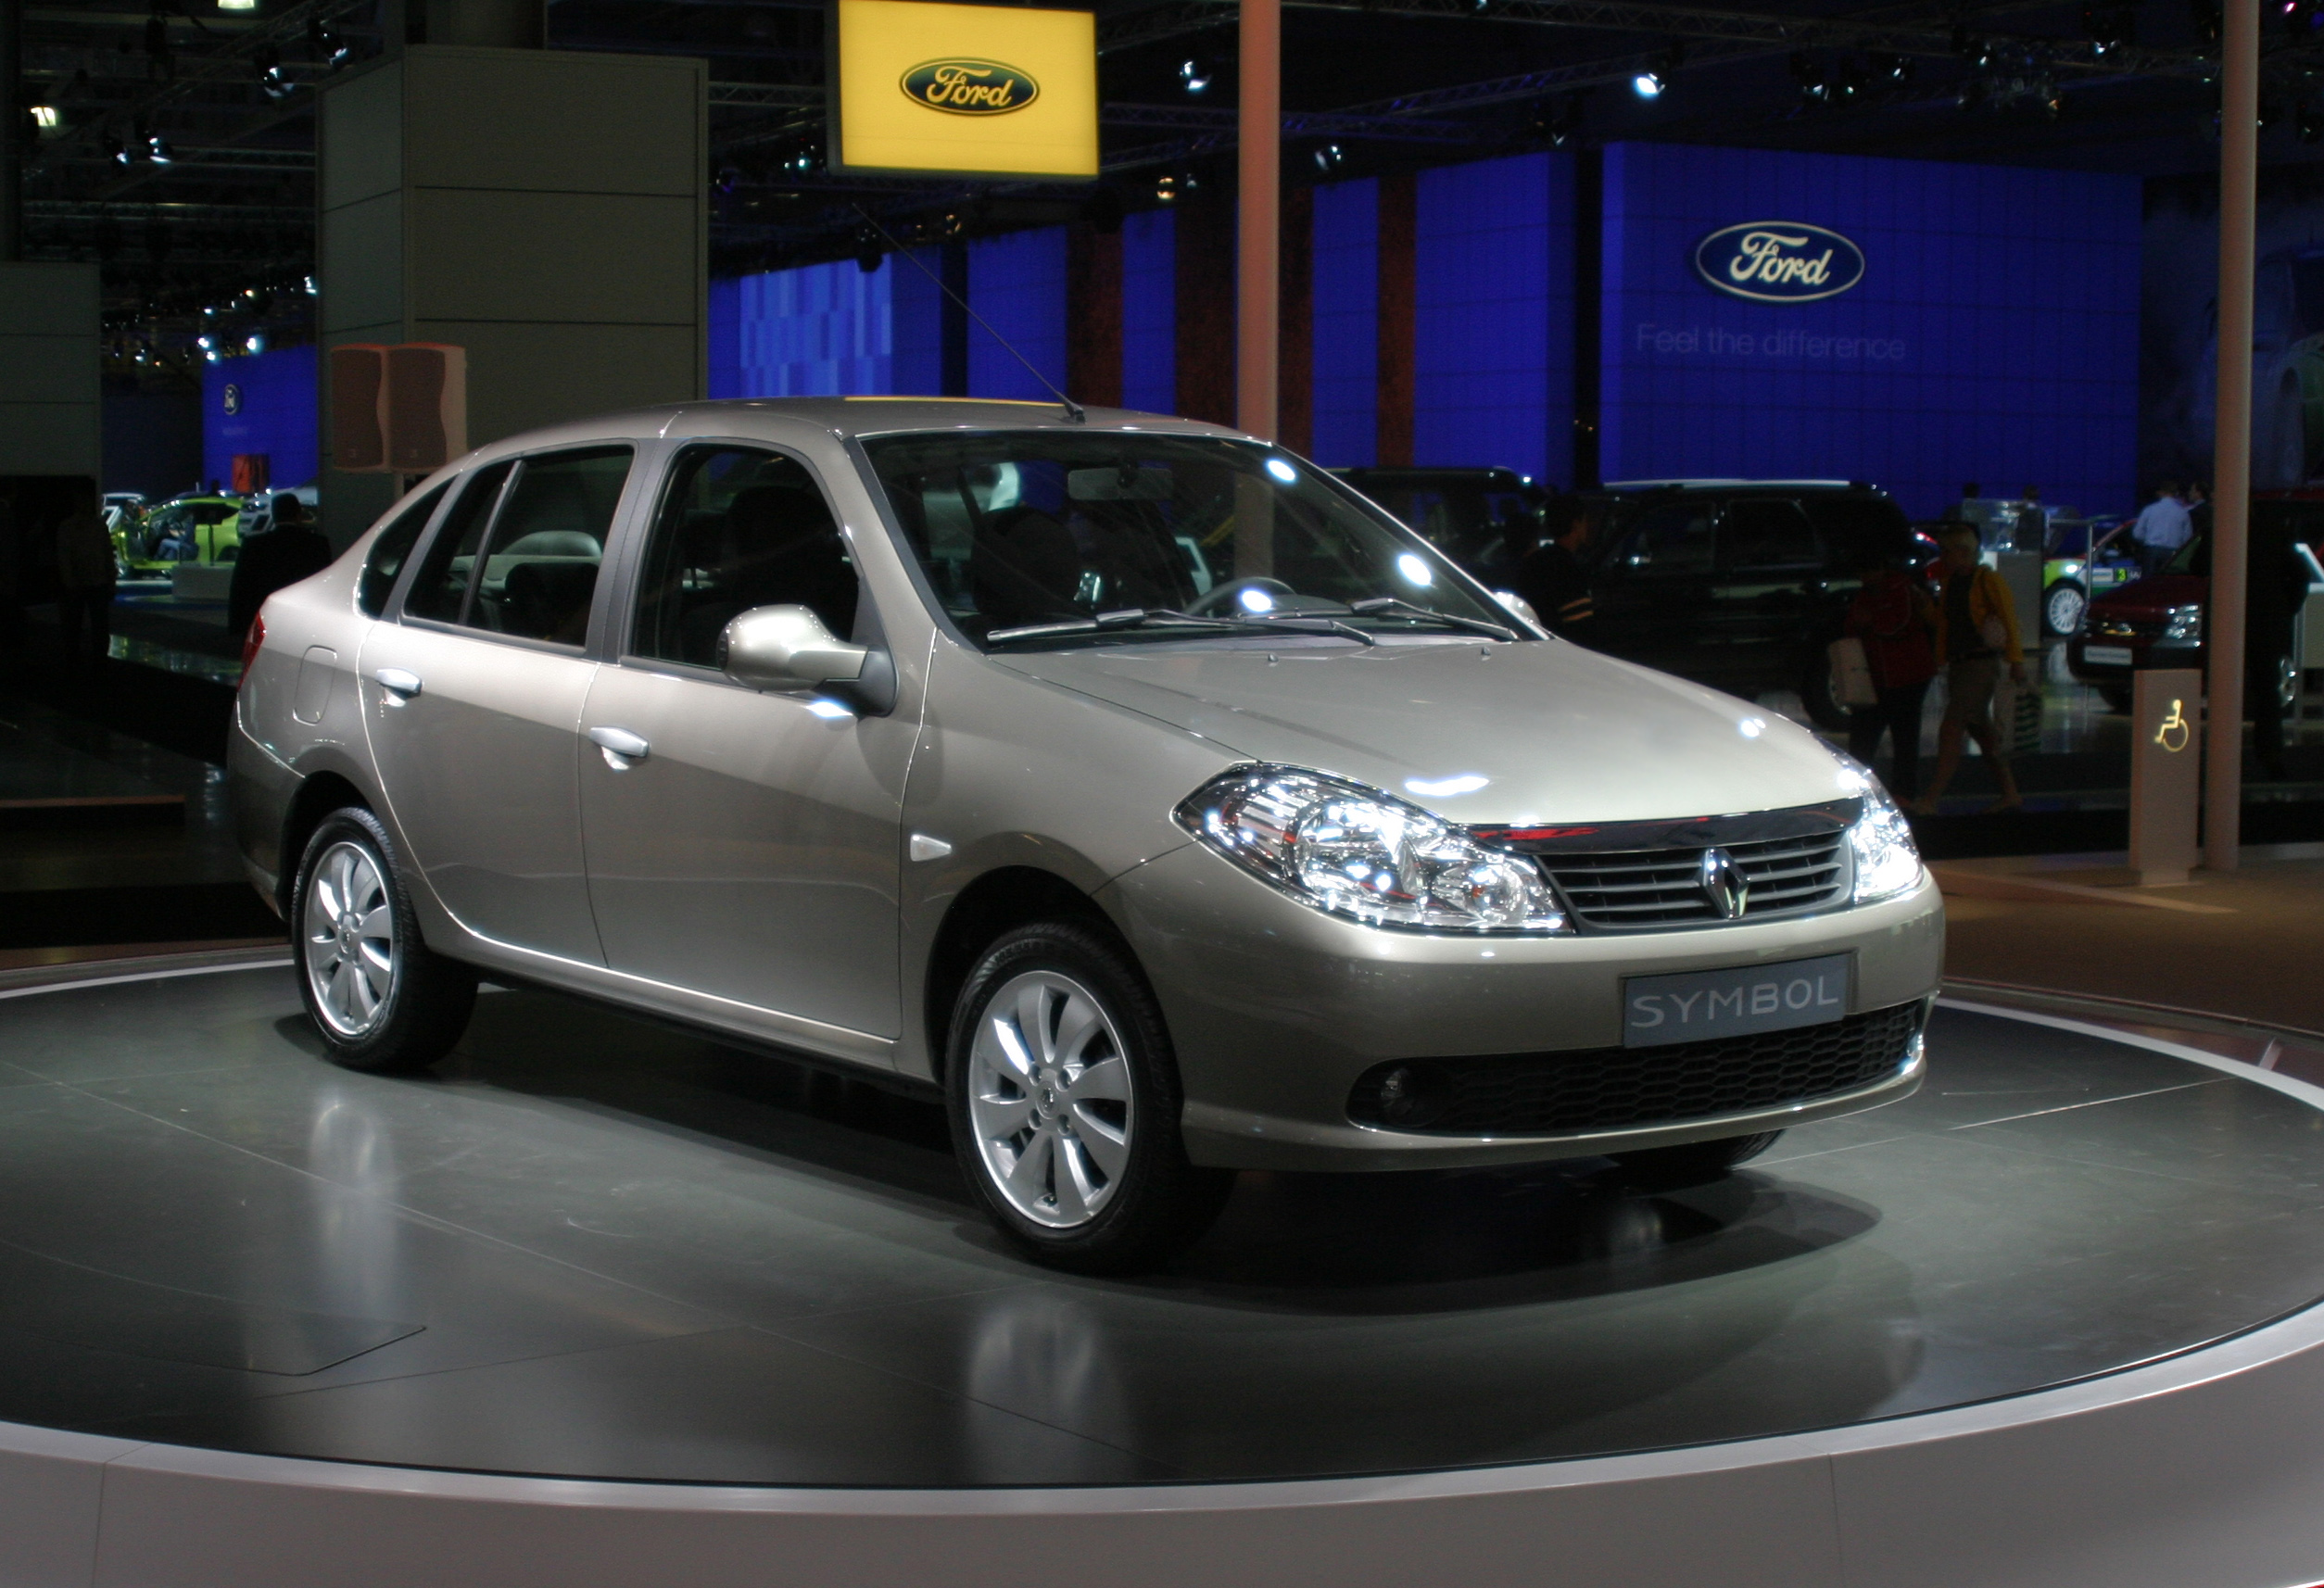 http://upload.wikimedia.org/wikipedia/commons/4/47/Renault_Symbol_front_wdebut_Moscow_autoshow_2008_27_08.jpg